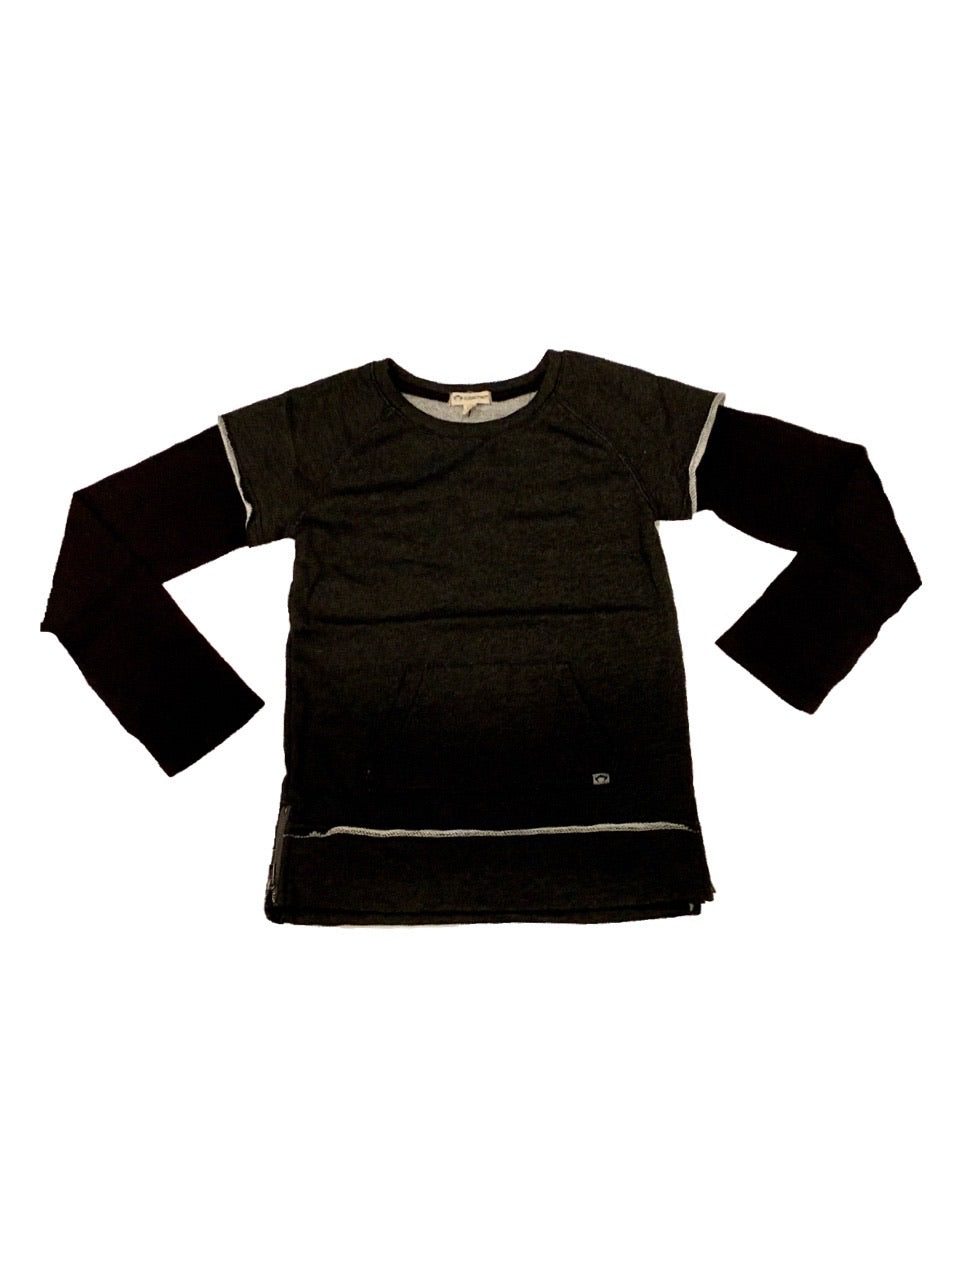 APPAMAN FREESTYLE LONG SLEEVE TOP IN CHARCOAL HEATHER